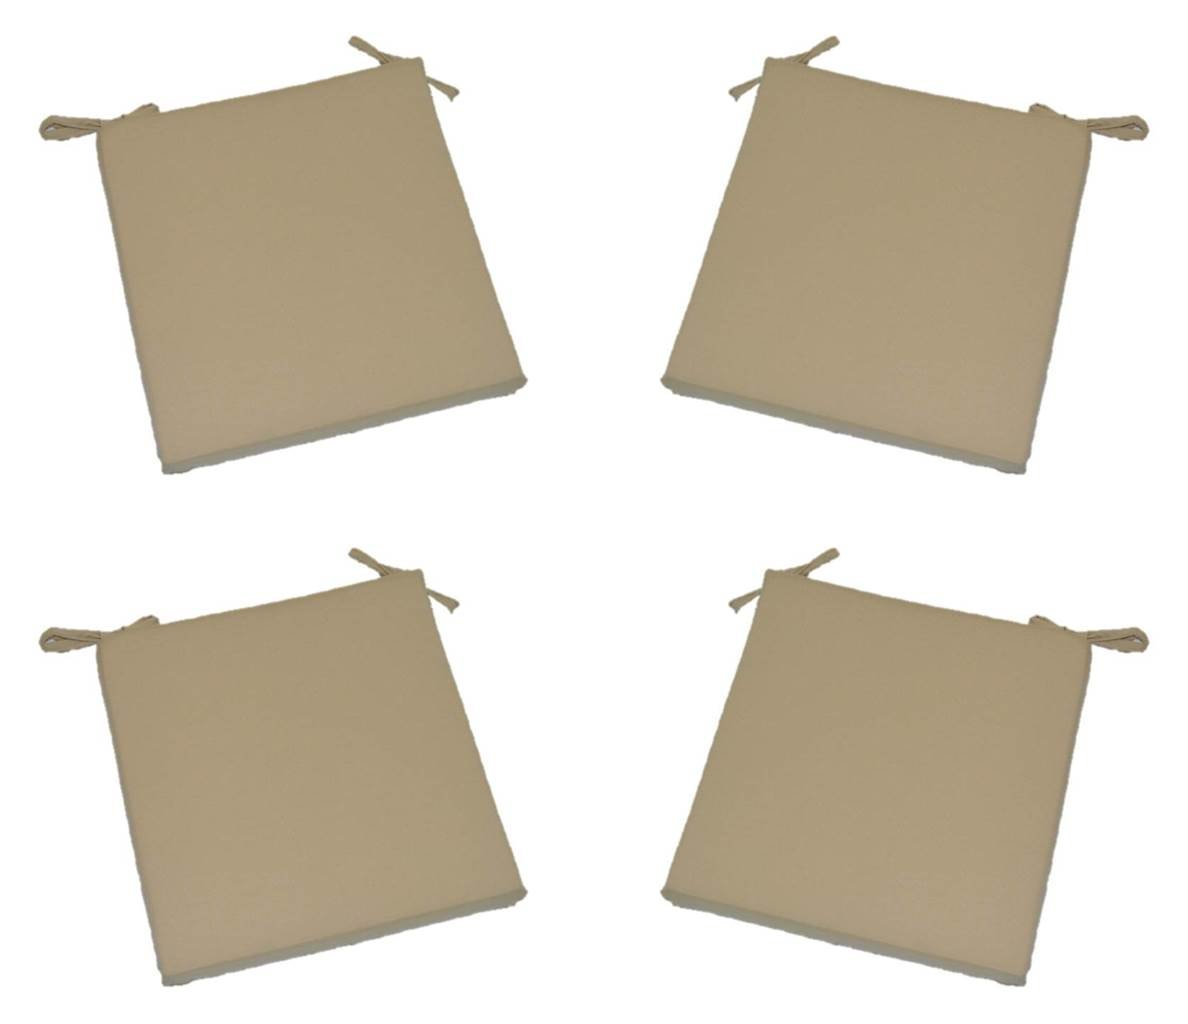 Set of 4 - Universal 2'' Thick Foam Seat Cushion with Ties for Dining / Patio Chair - Light Tan / Khaki Fabric - Choose Size (20'' x 17 1/2'') by Resort Spa Home Decor